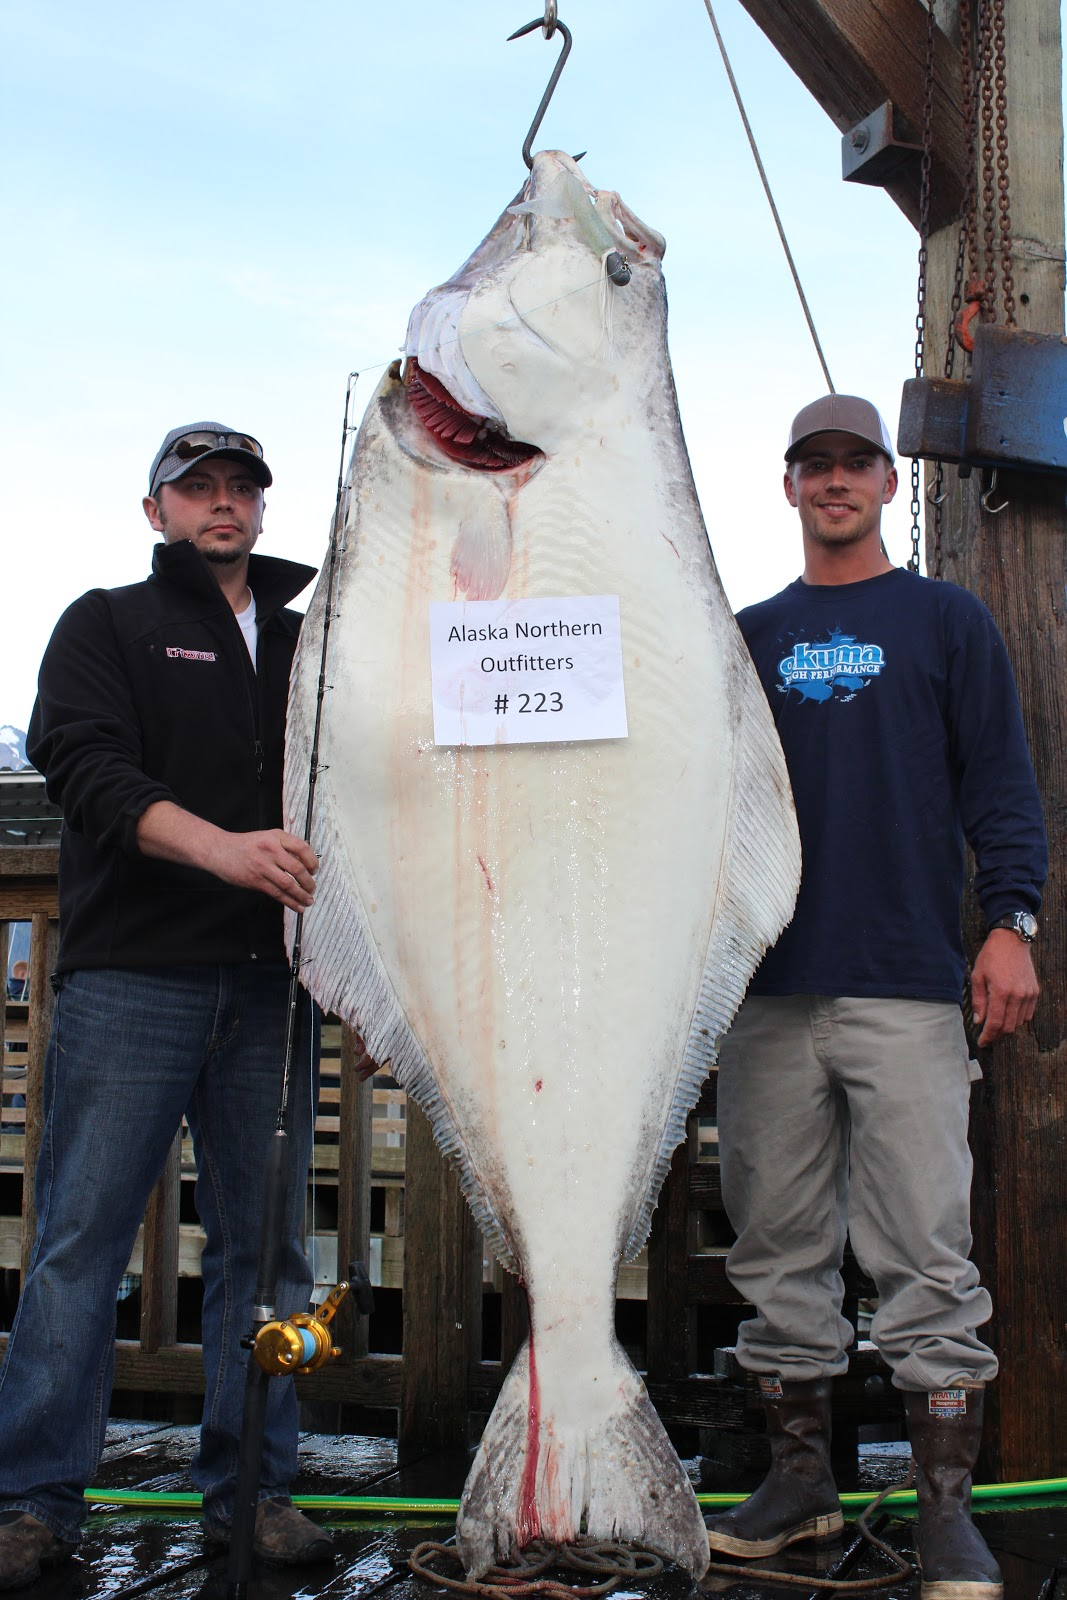 The Biggest Spring 2016 Fashion Trends On Pinterest: Captain's Blog: August 25th- #227lbs Biggest Halibut Of